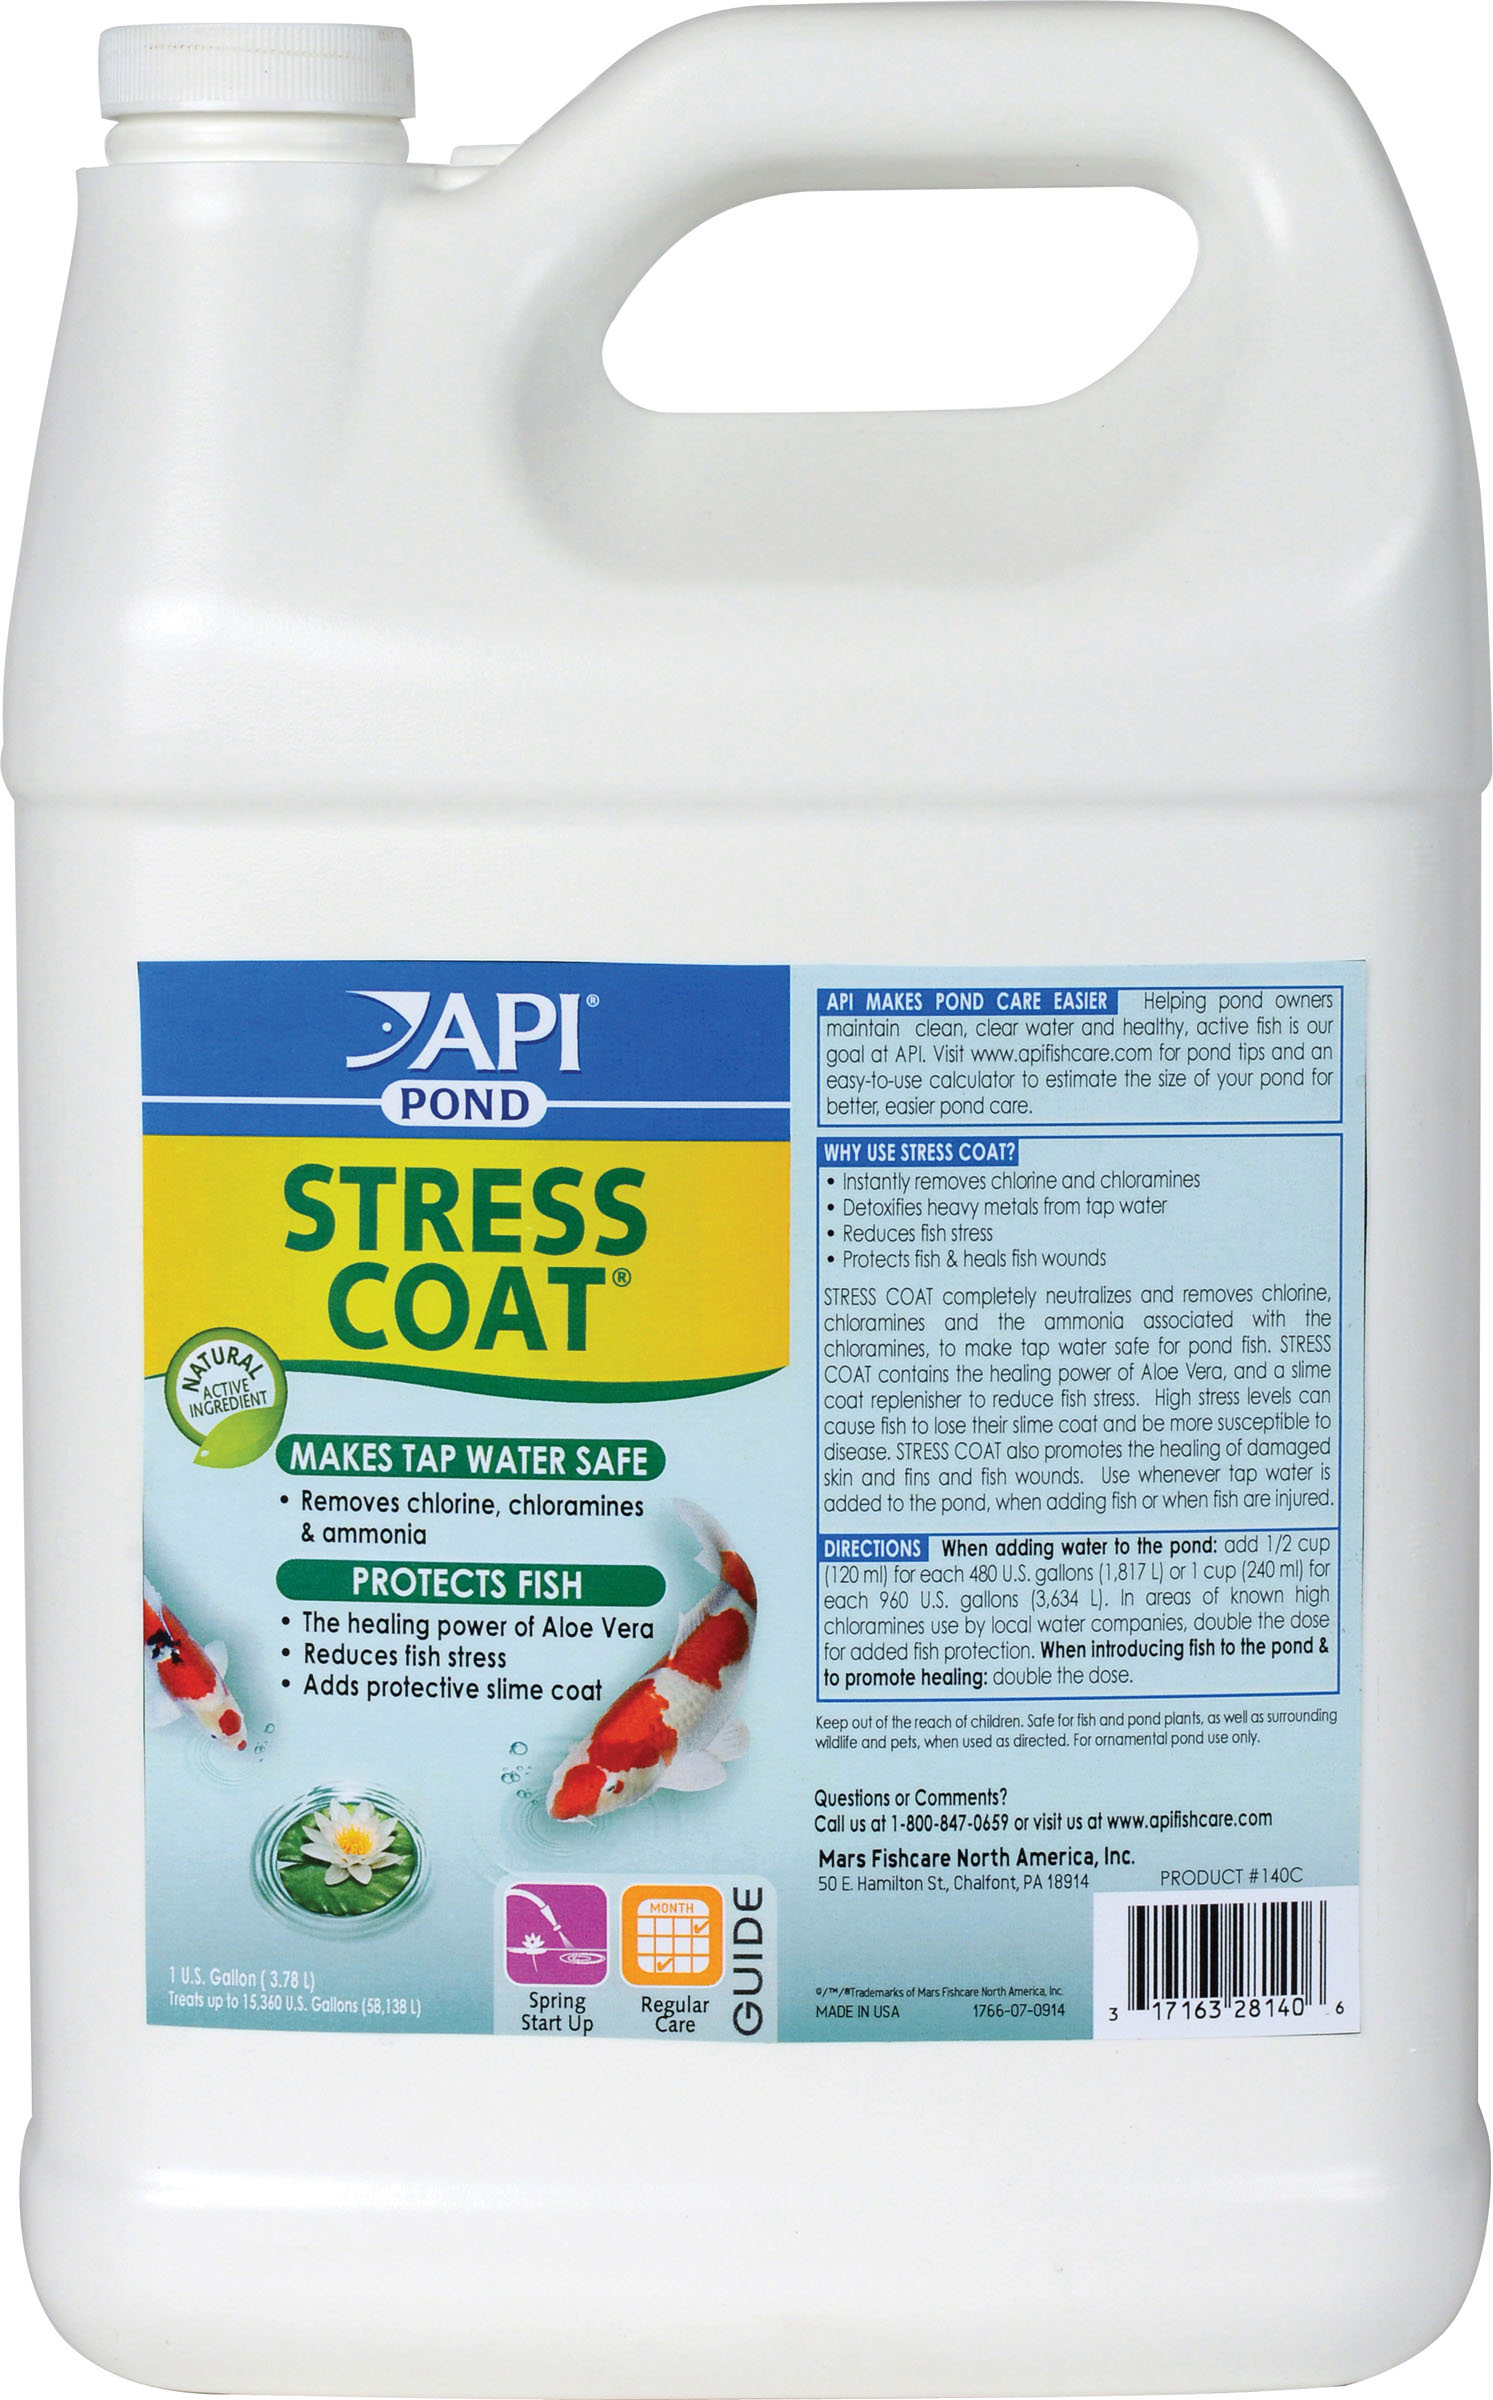 Api Pondcare Stress Coat Pond Water Conditioner 1-Gallon (Pack of 1) by Mars Fishcare North America